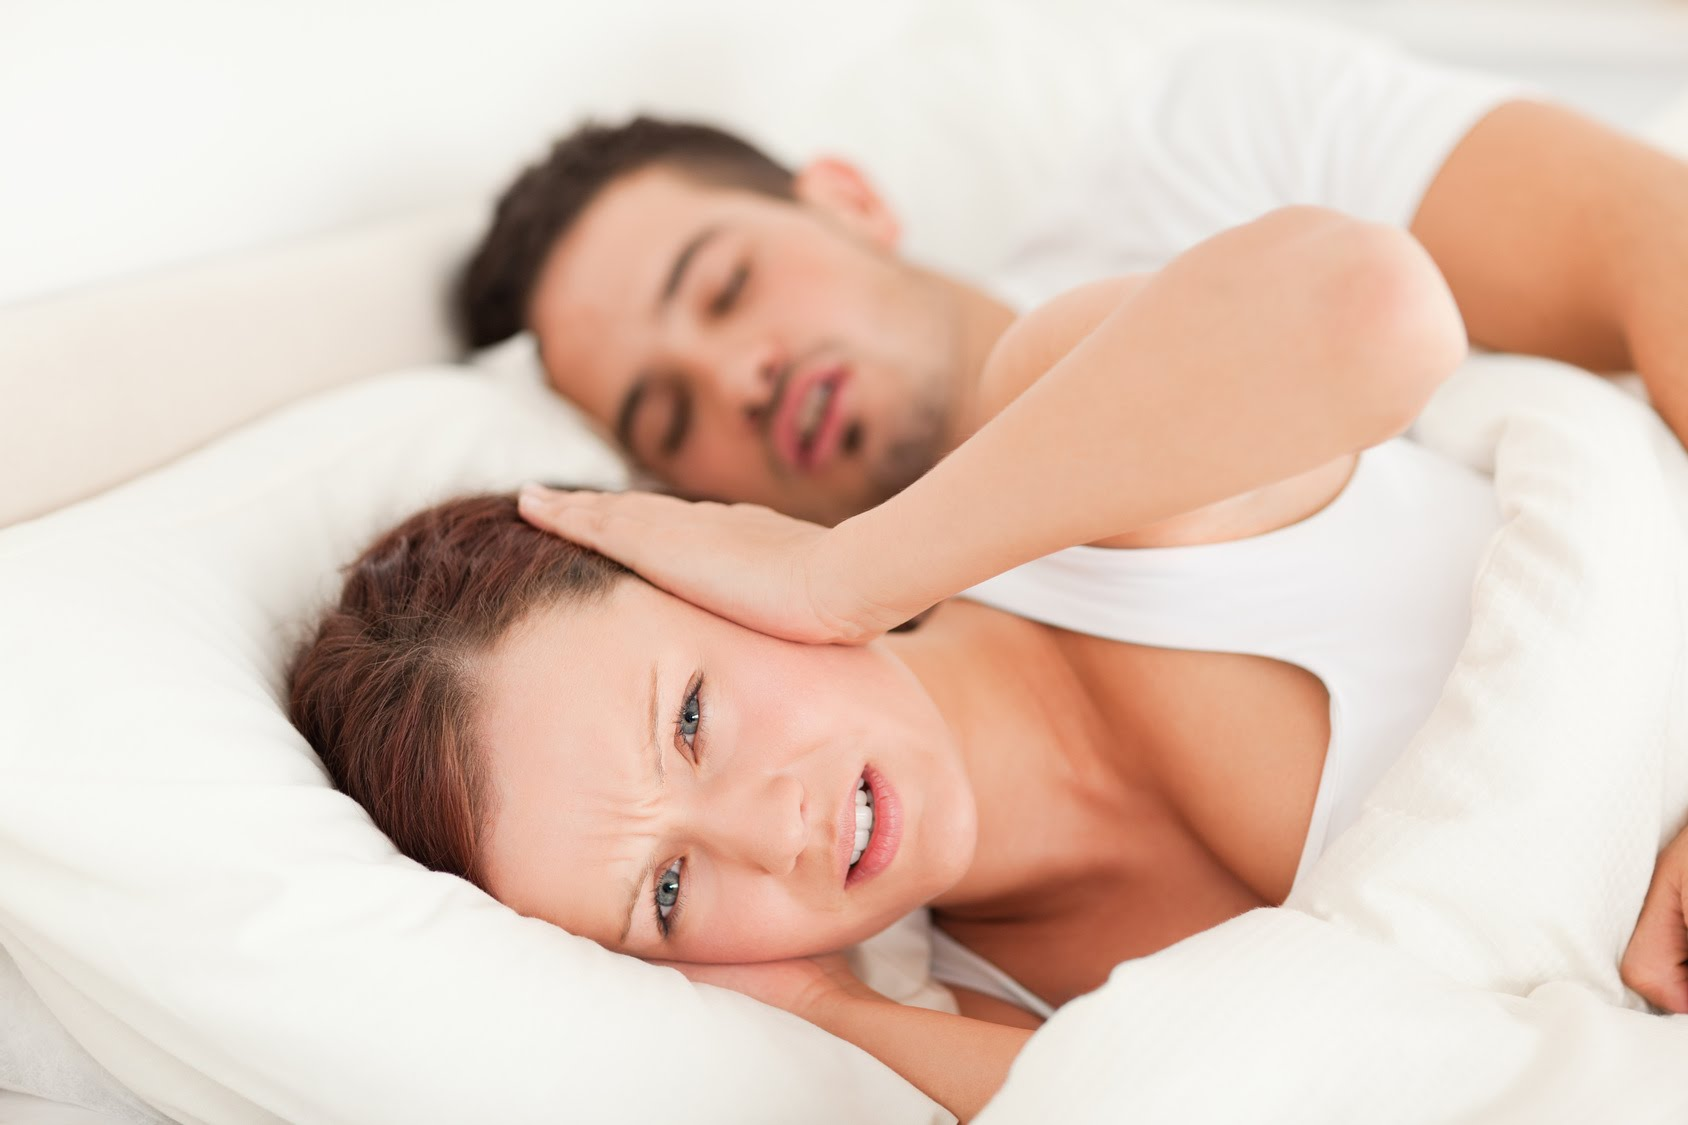 Exercises To Stop Snoring Naturally